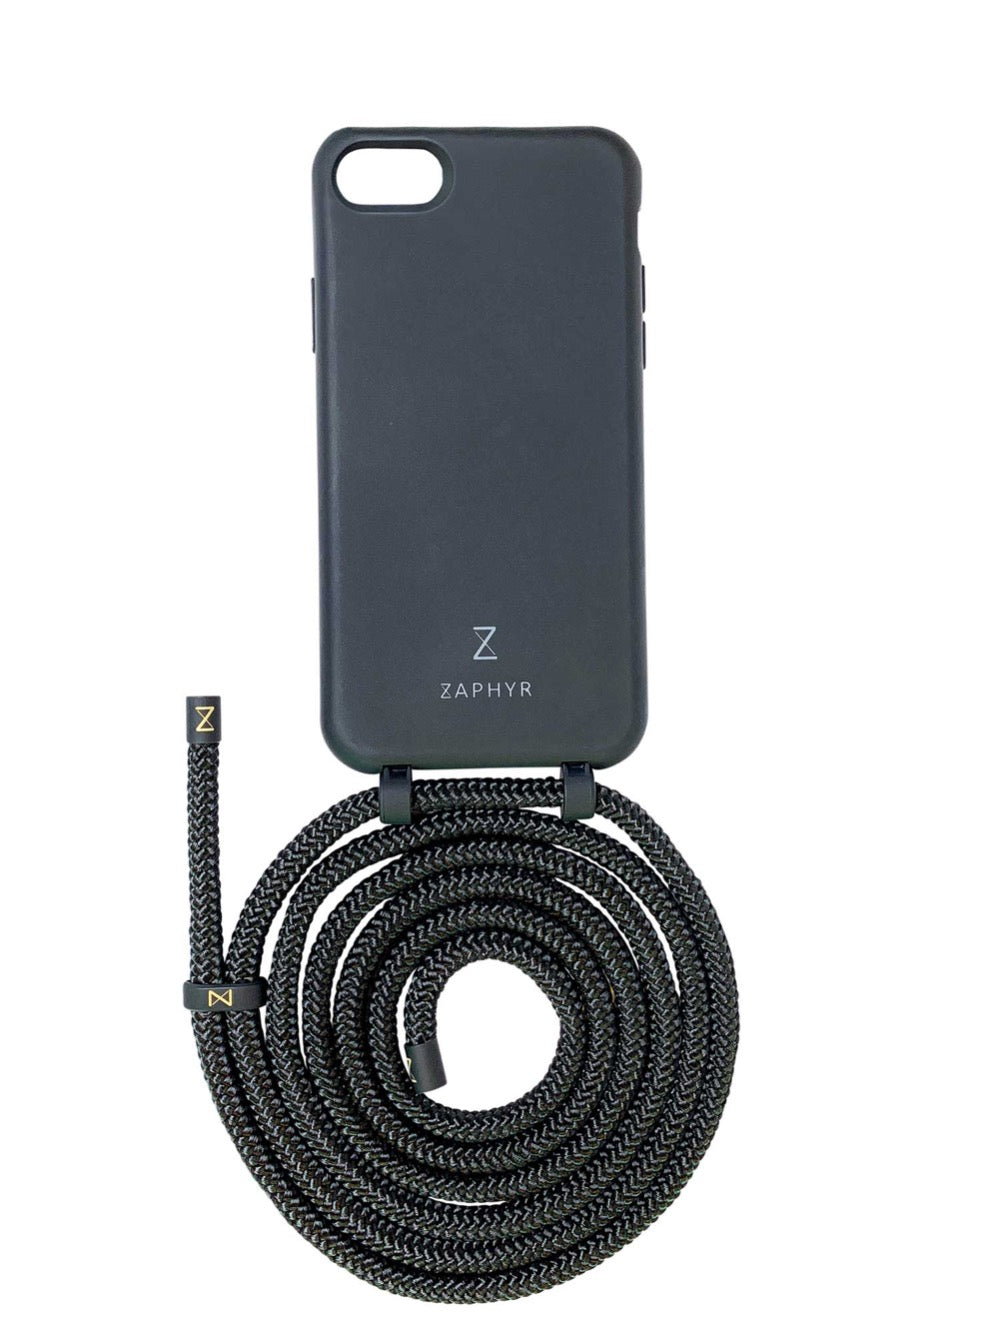 Zaphyr phone case iphone 7 / 8 / SE black with strap, crossbody phone case